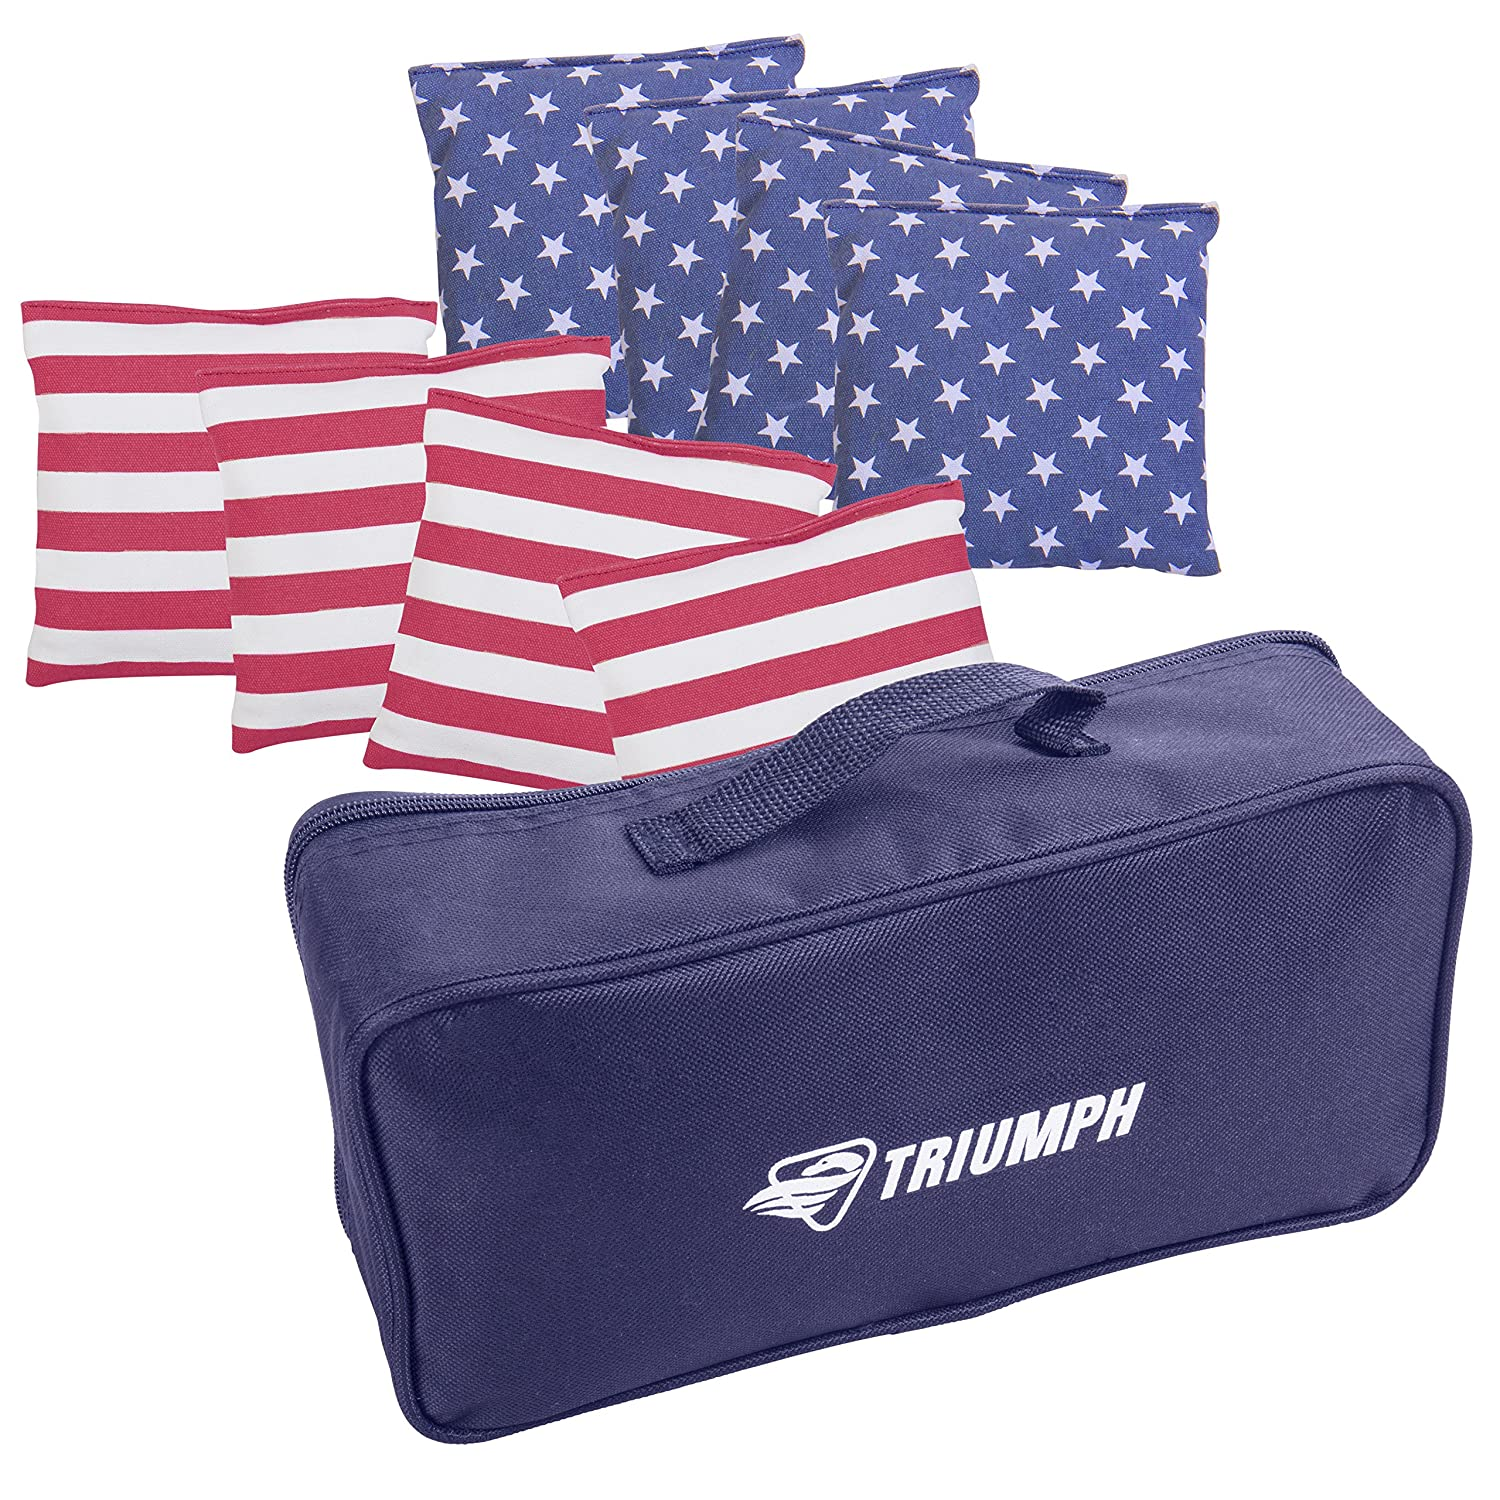 Triumph 6 x 6 Patriotic Stars and Stripes 16 oz. Bean Bags with Carry Pouch (8-Pack) Escalade Sports 12-0027-2